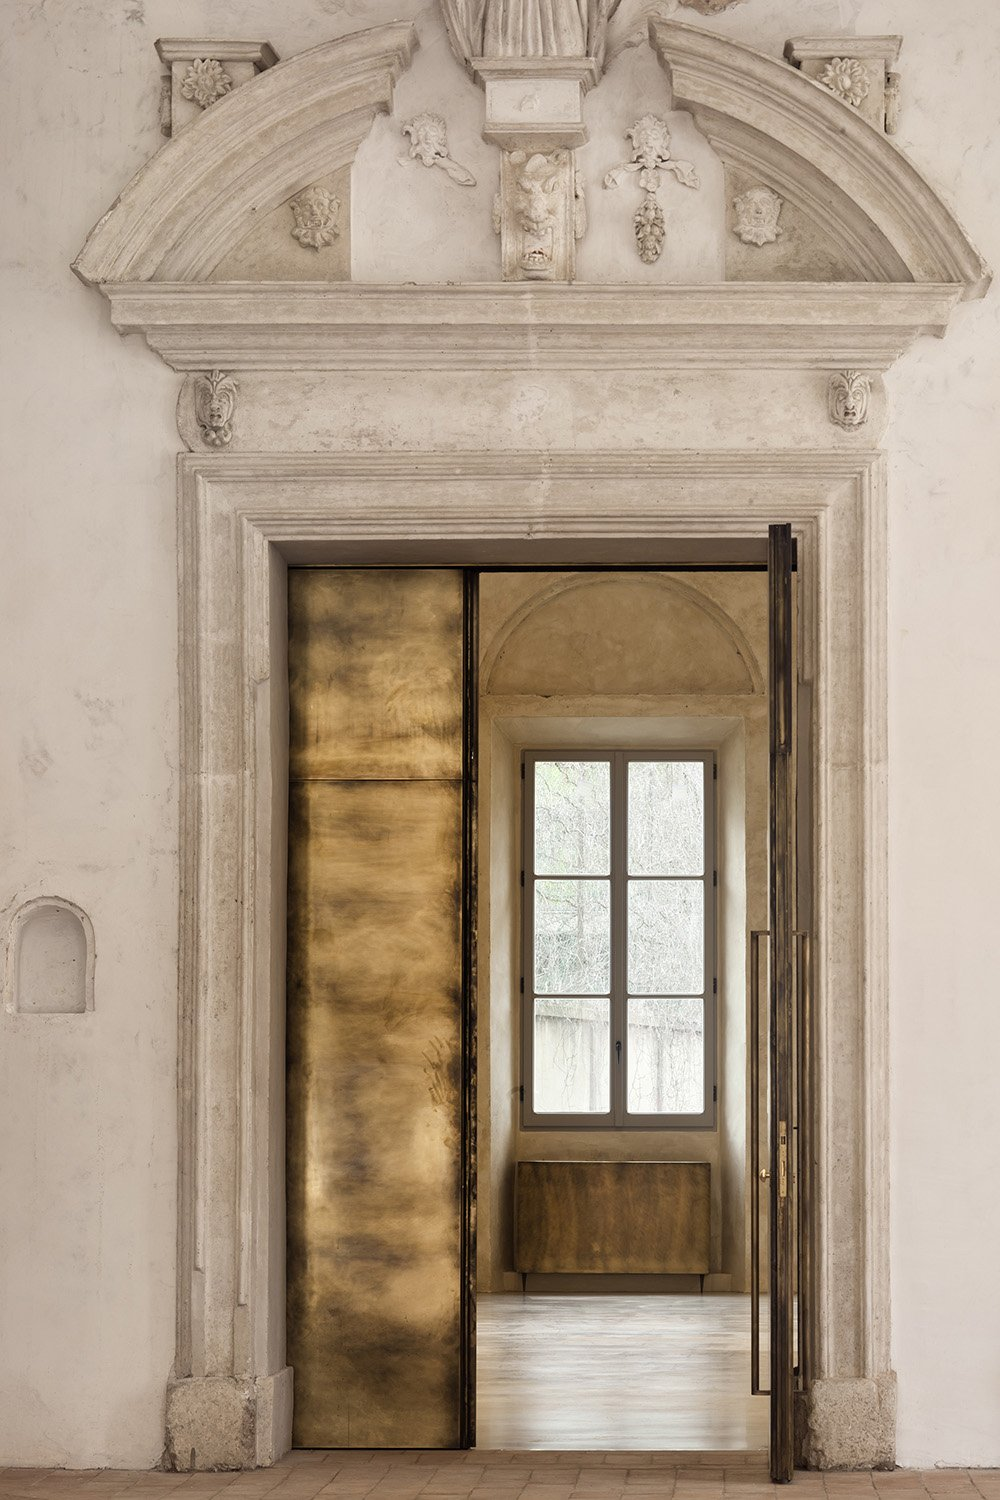 Monumental body, stucco portal and the new burnished brass door Alessandra Chemollo